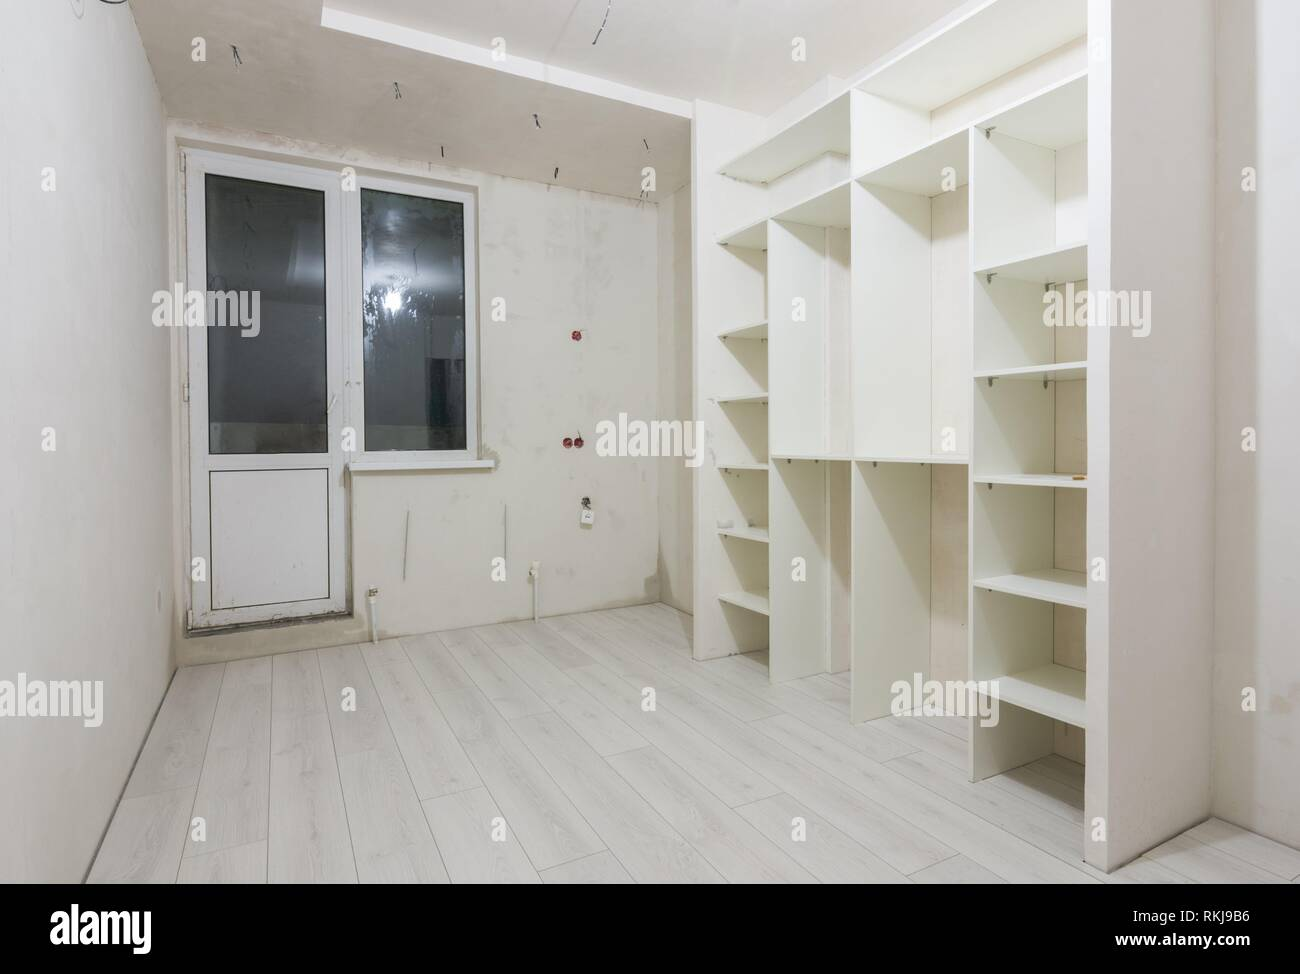 Repair in the living room of new buildings, built-in wardrobe and on the floor laminated panels. - Stock Image